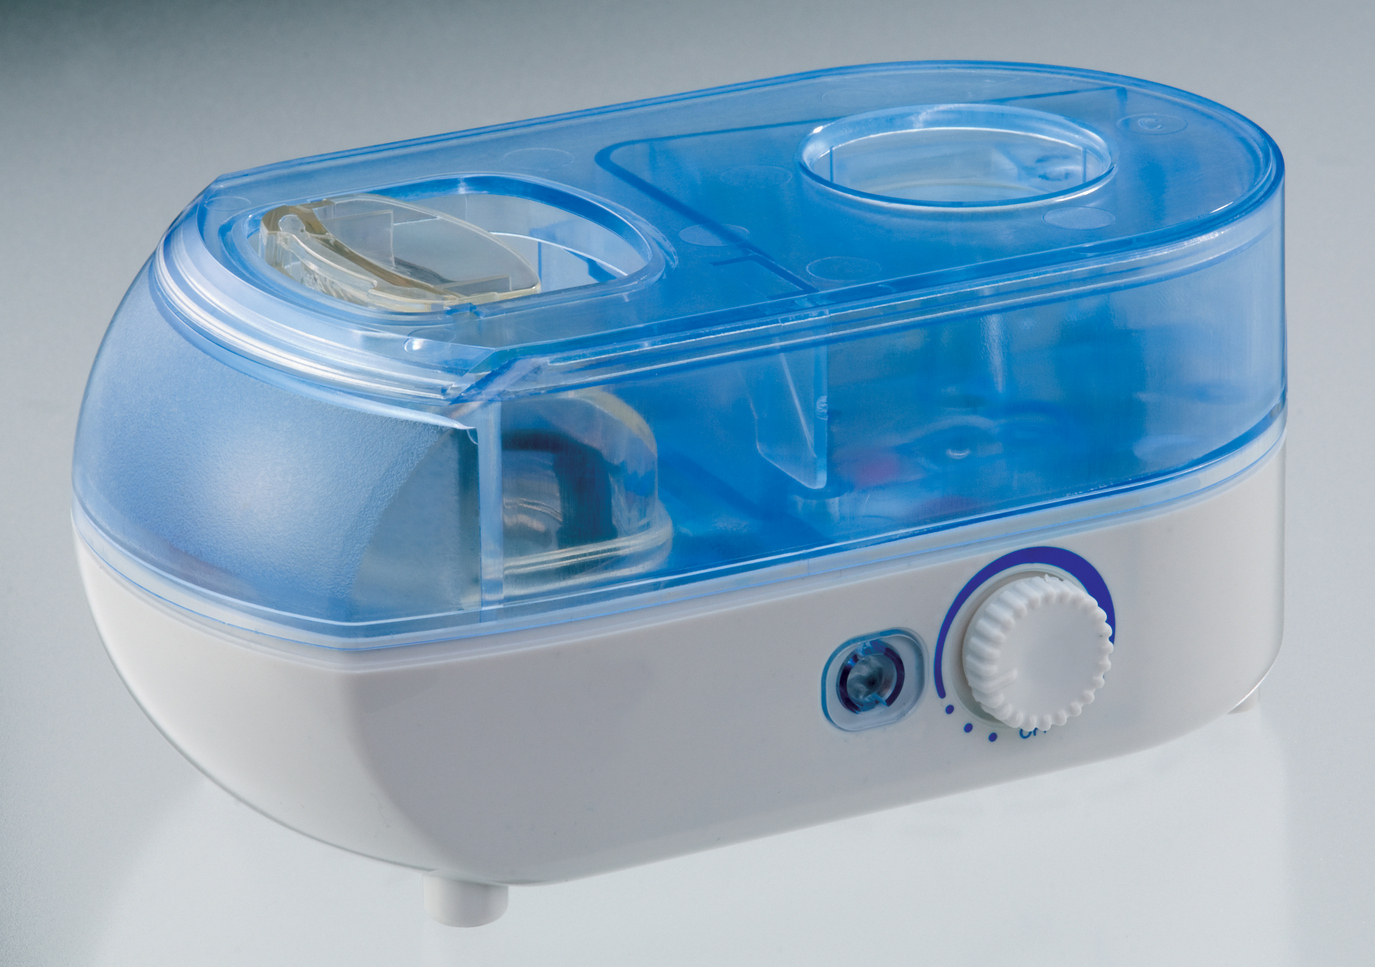 SPT-SU-1052-Portable Humidifier with Ionizer by Sunpentown 5a6f01fae2246159f91b401d